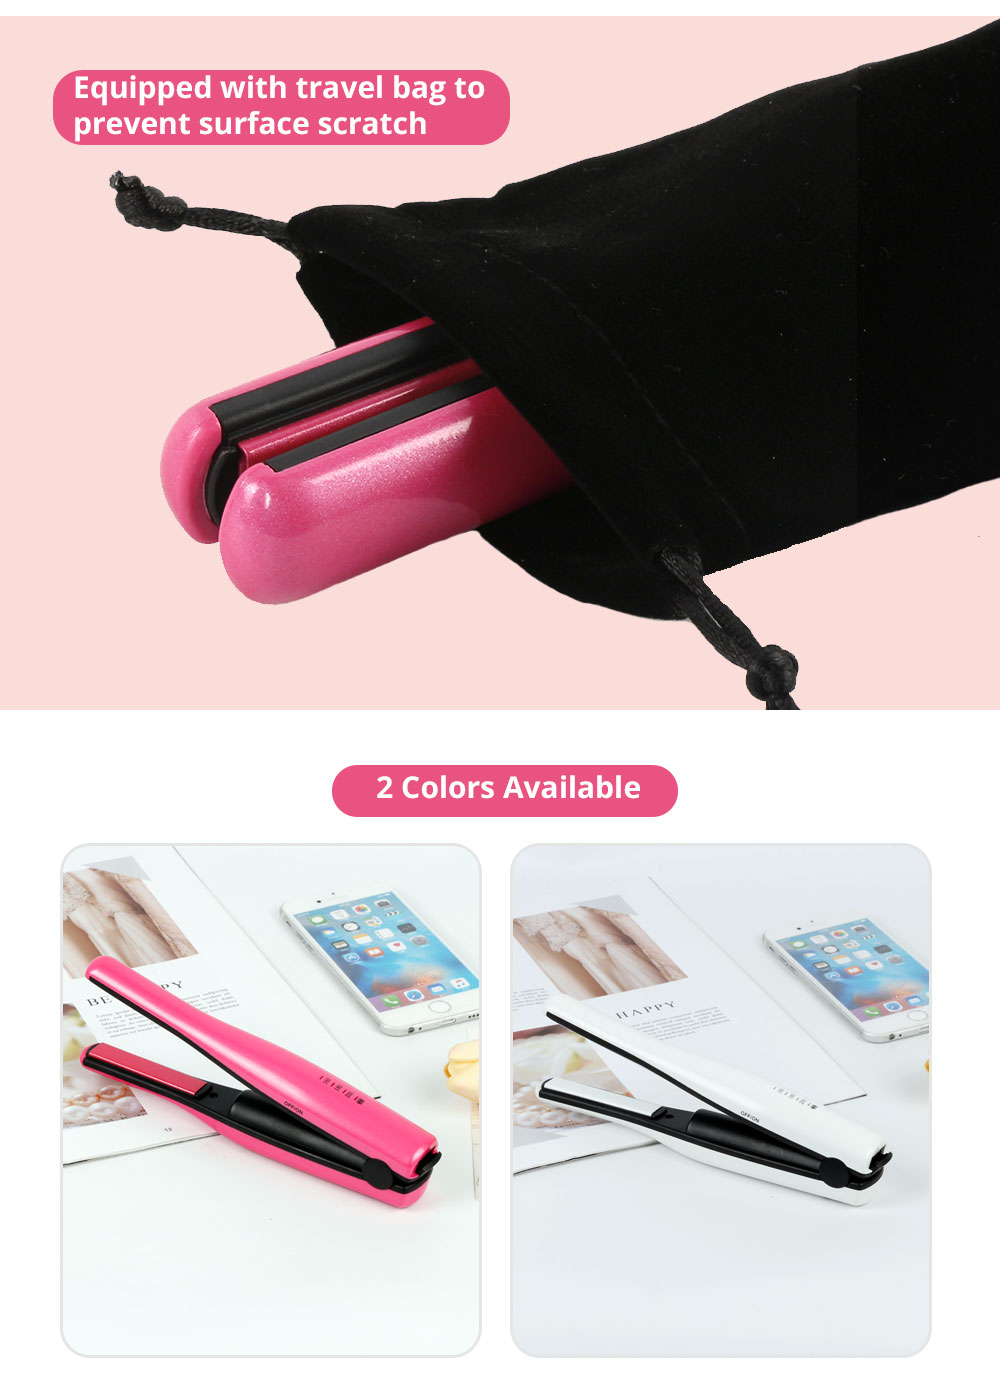 Mini Travel Portable Hair Straightener Curling Iron Cordless USB Charger for Beginner Christmas Gift BLACK FRIDAY SALE 2